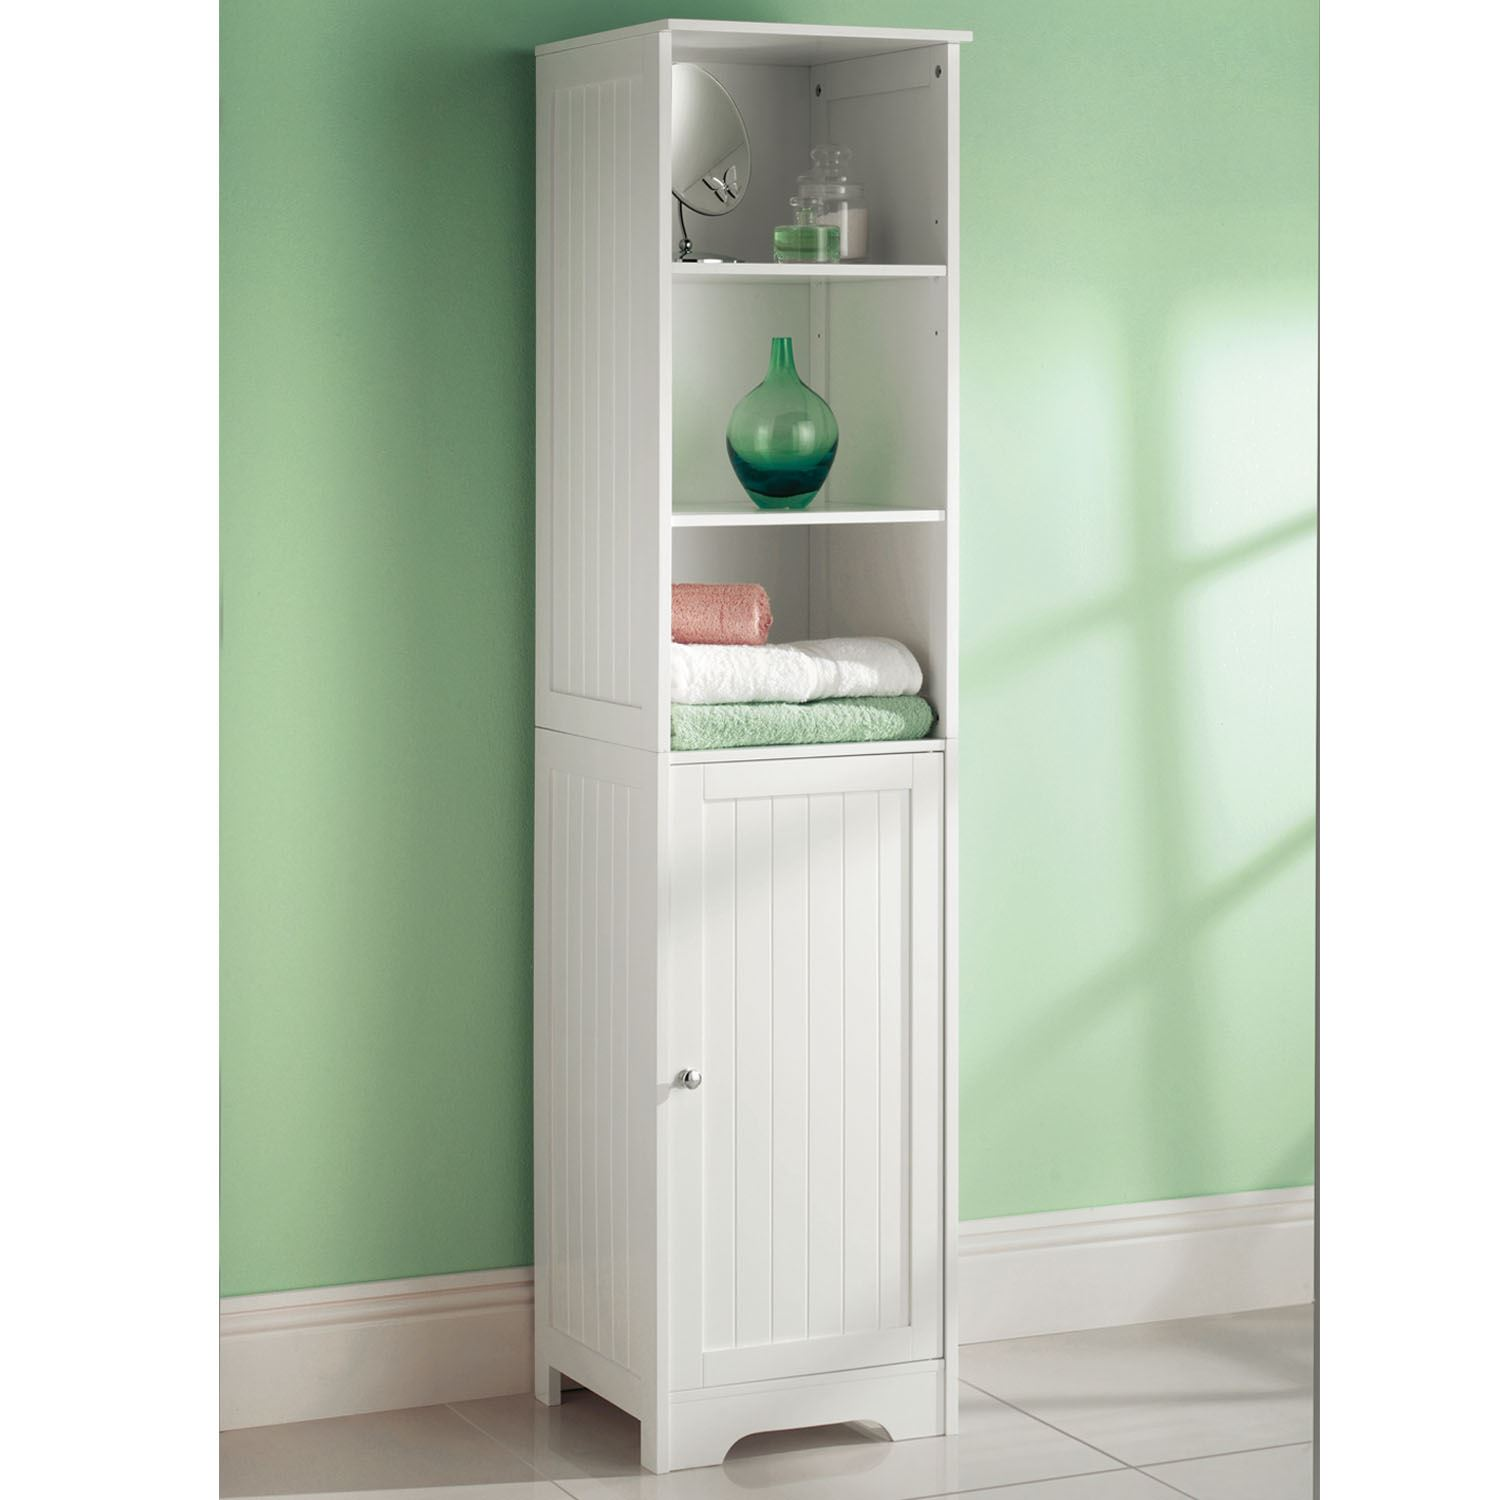 White Wooden Bathroom Cabinet Shelf Cupboard Bedroom Storage Unit